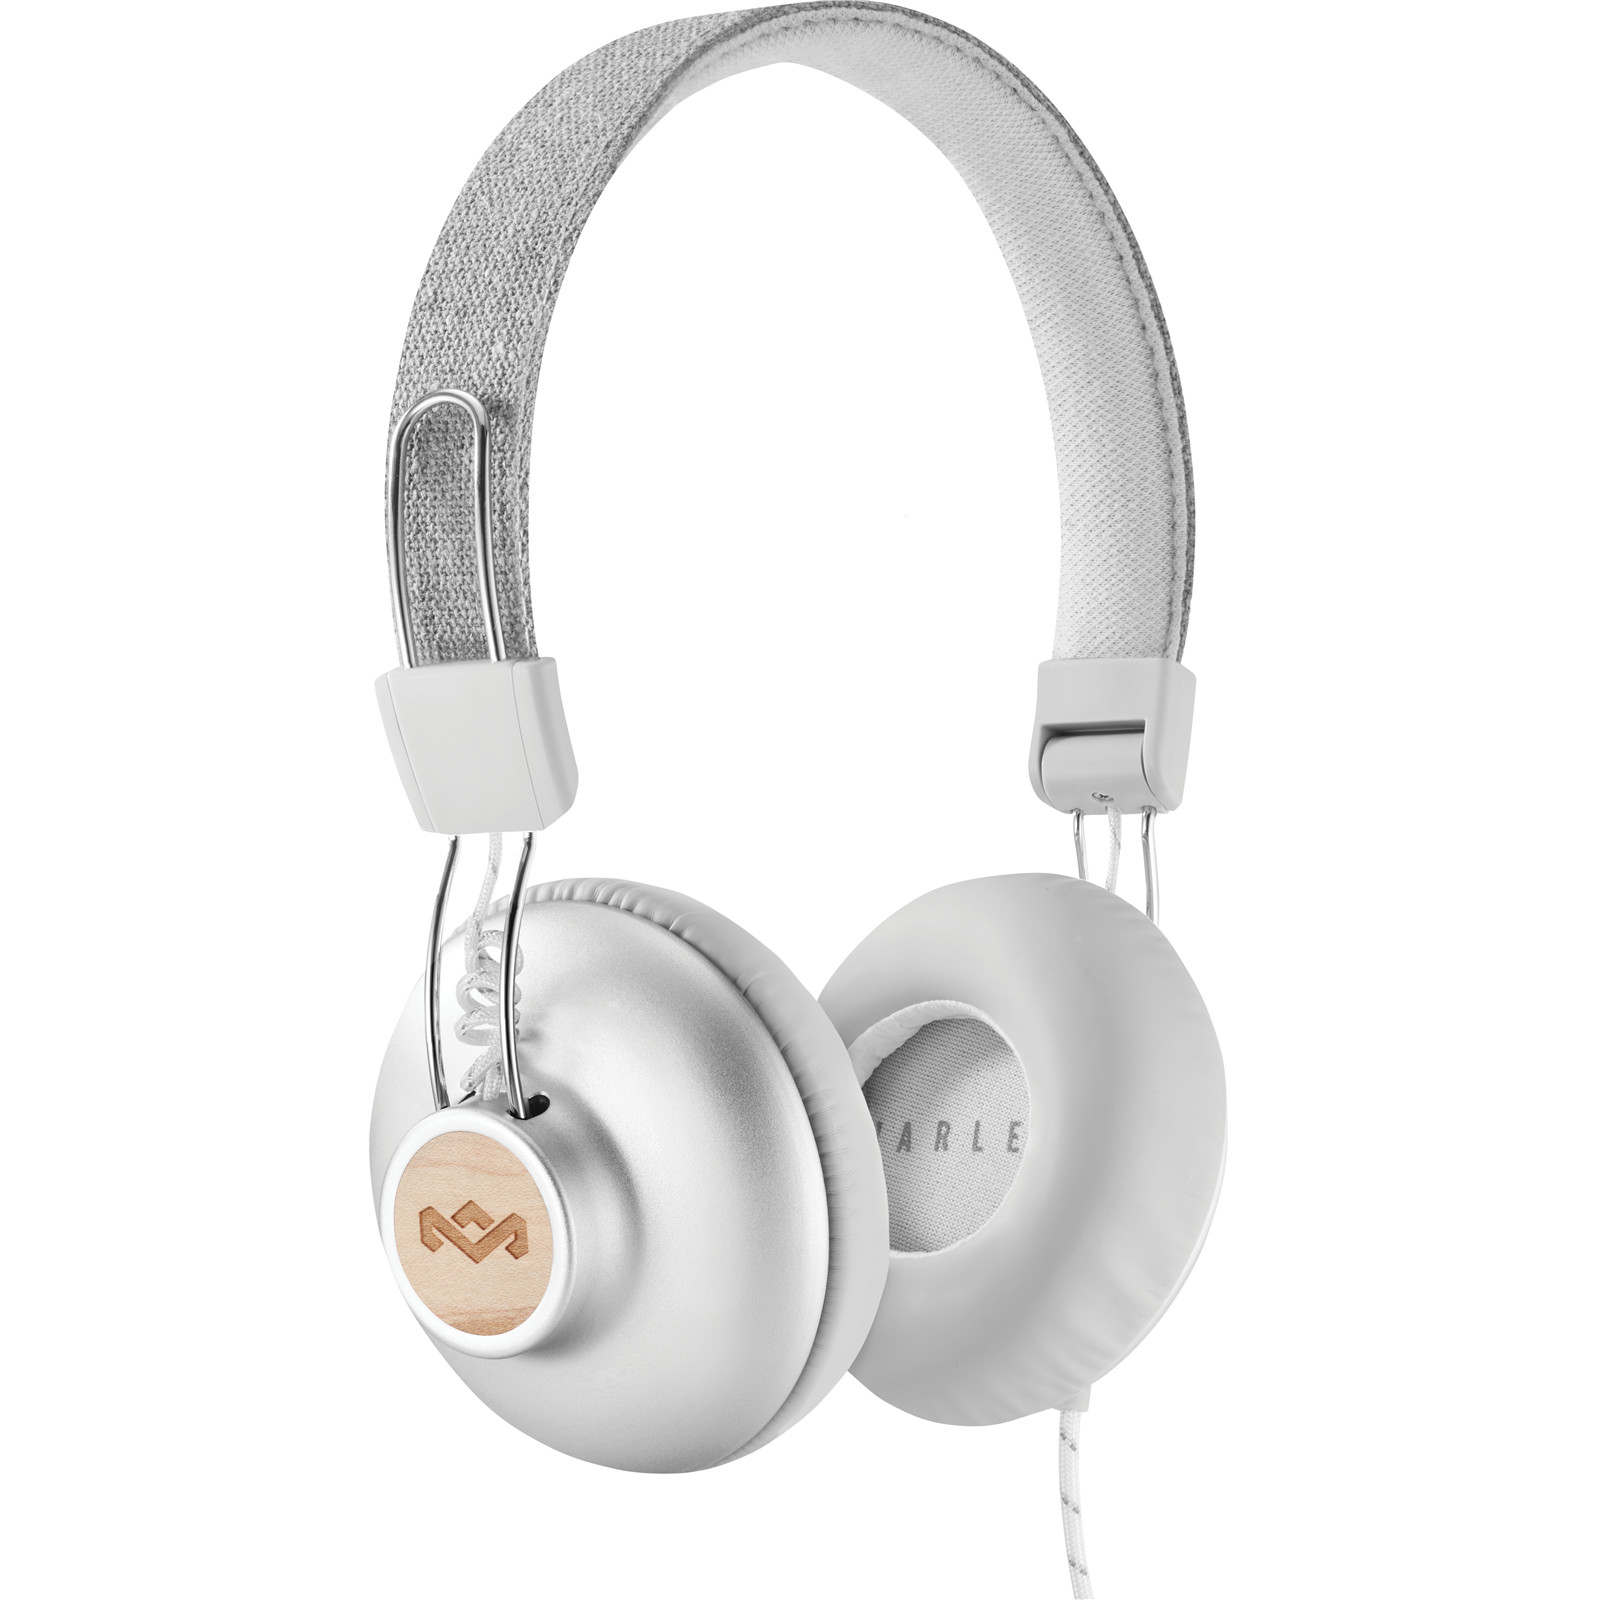 7a733e9cab1 Buy the MARLEY Positive Vibration 2.0 On-Ear Headphones - Silver ...